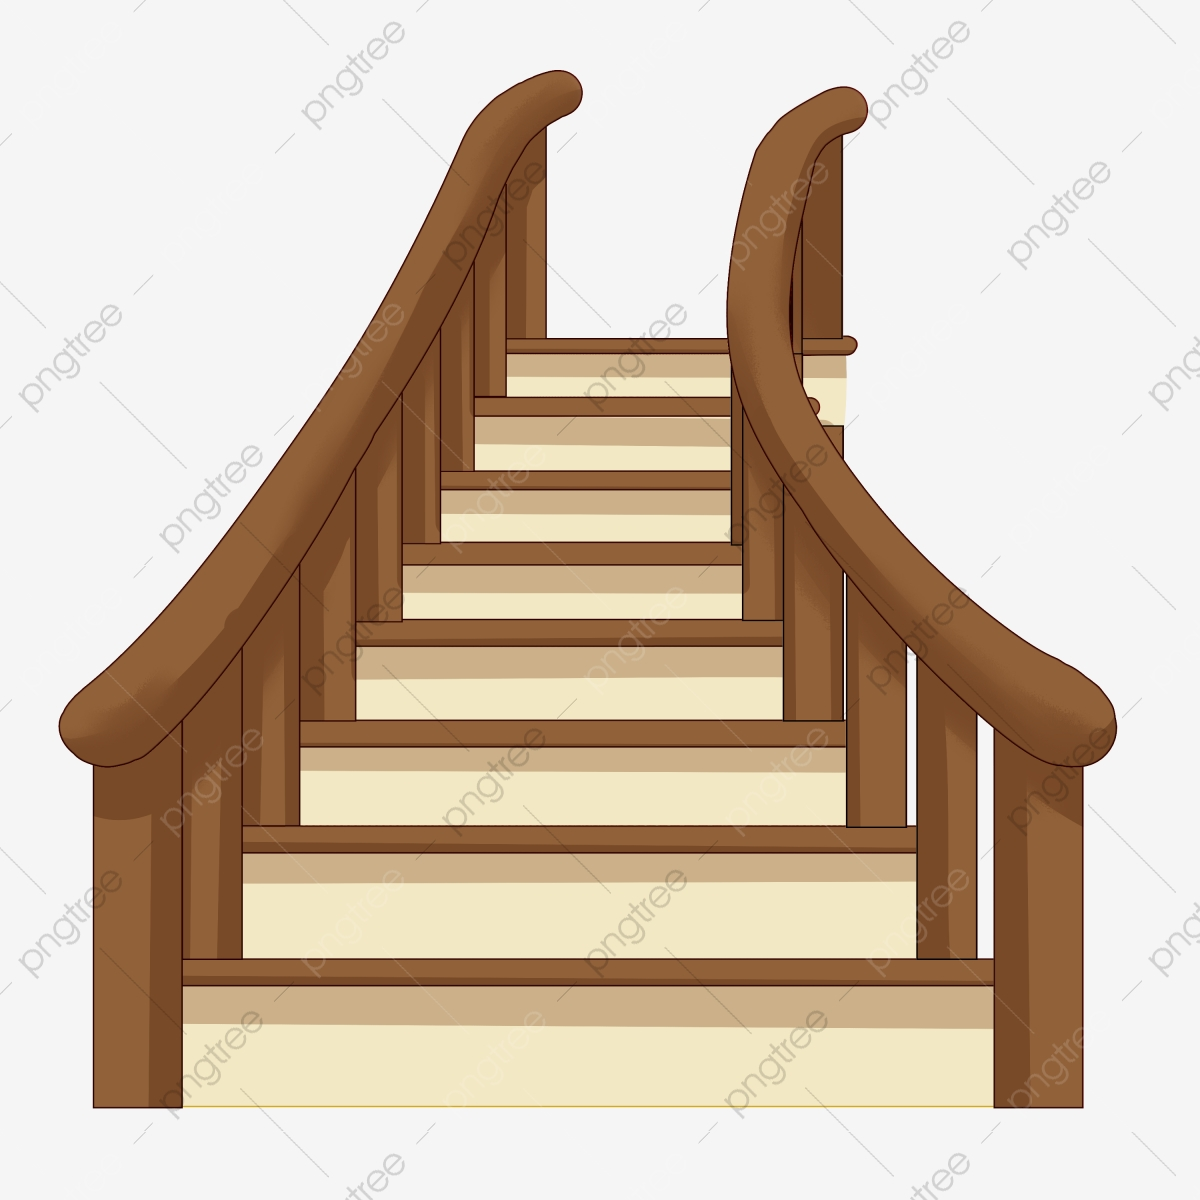 wooden stairs ladder illustration wooden stairs stairs illustration cartoon illustration png transparent clipart image and psd file for free download https pngtree com freepng wooden stairs ladder illustration 4684365 html